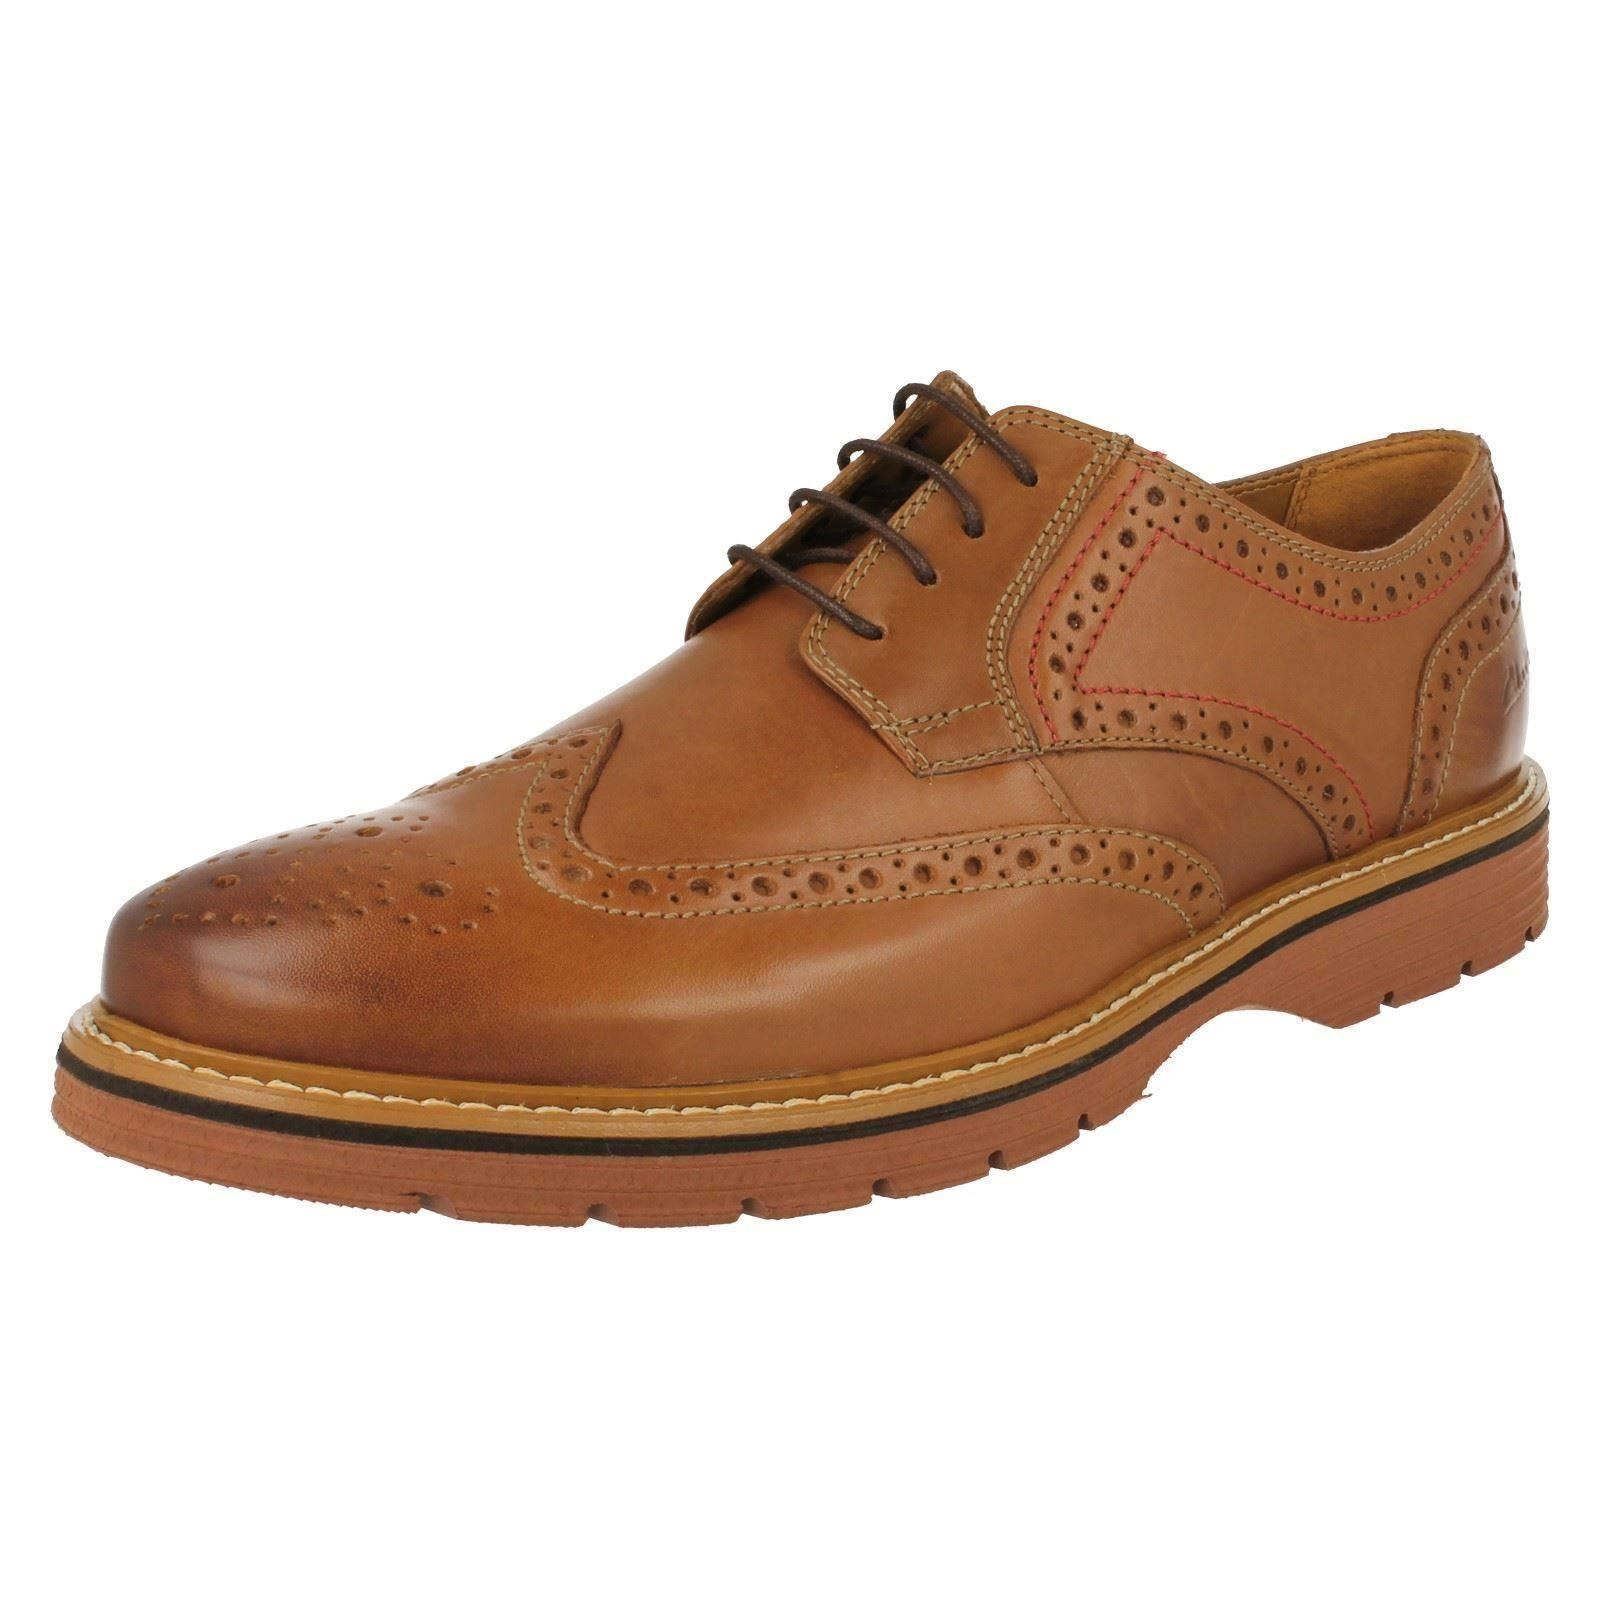 Mens Clarks Brogue Shoes Newkirk Wing